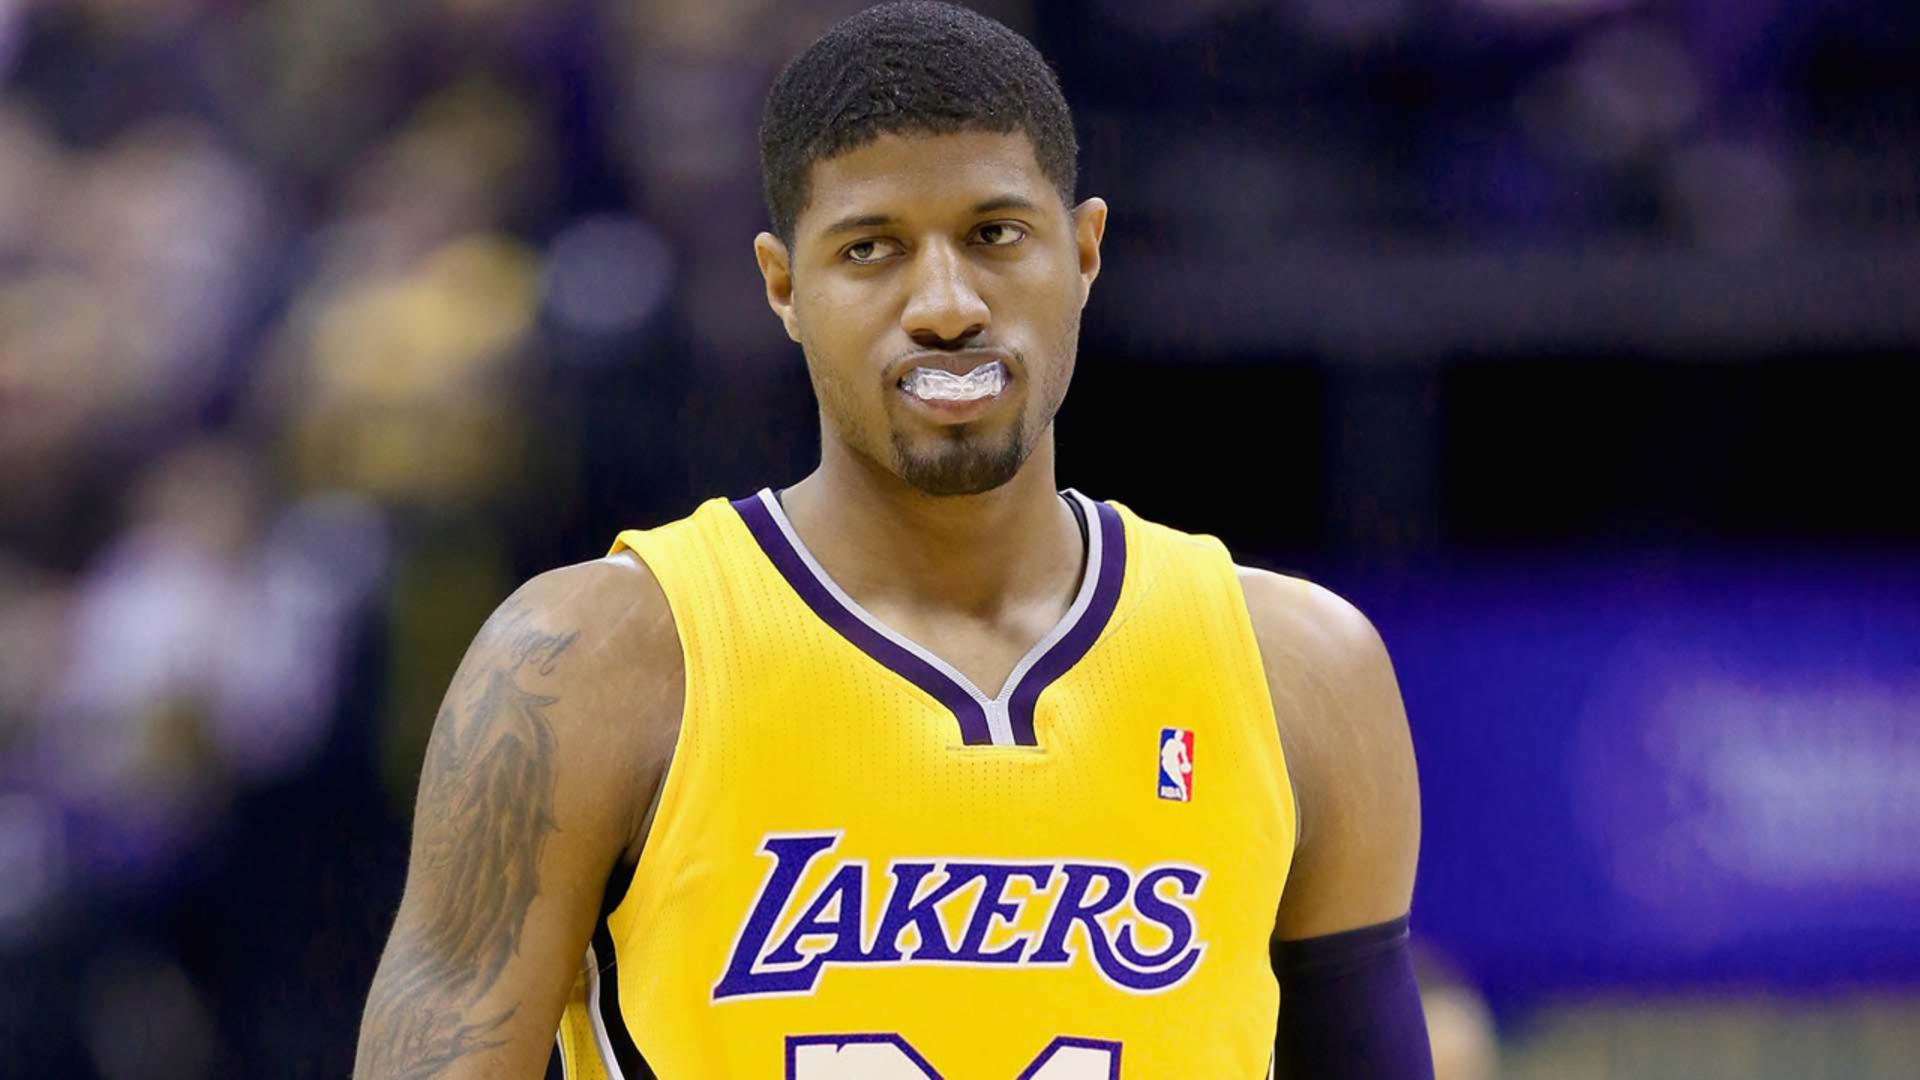 Paul George LEAVING Pacers to Become a Laker!?!